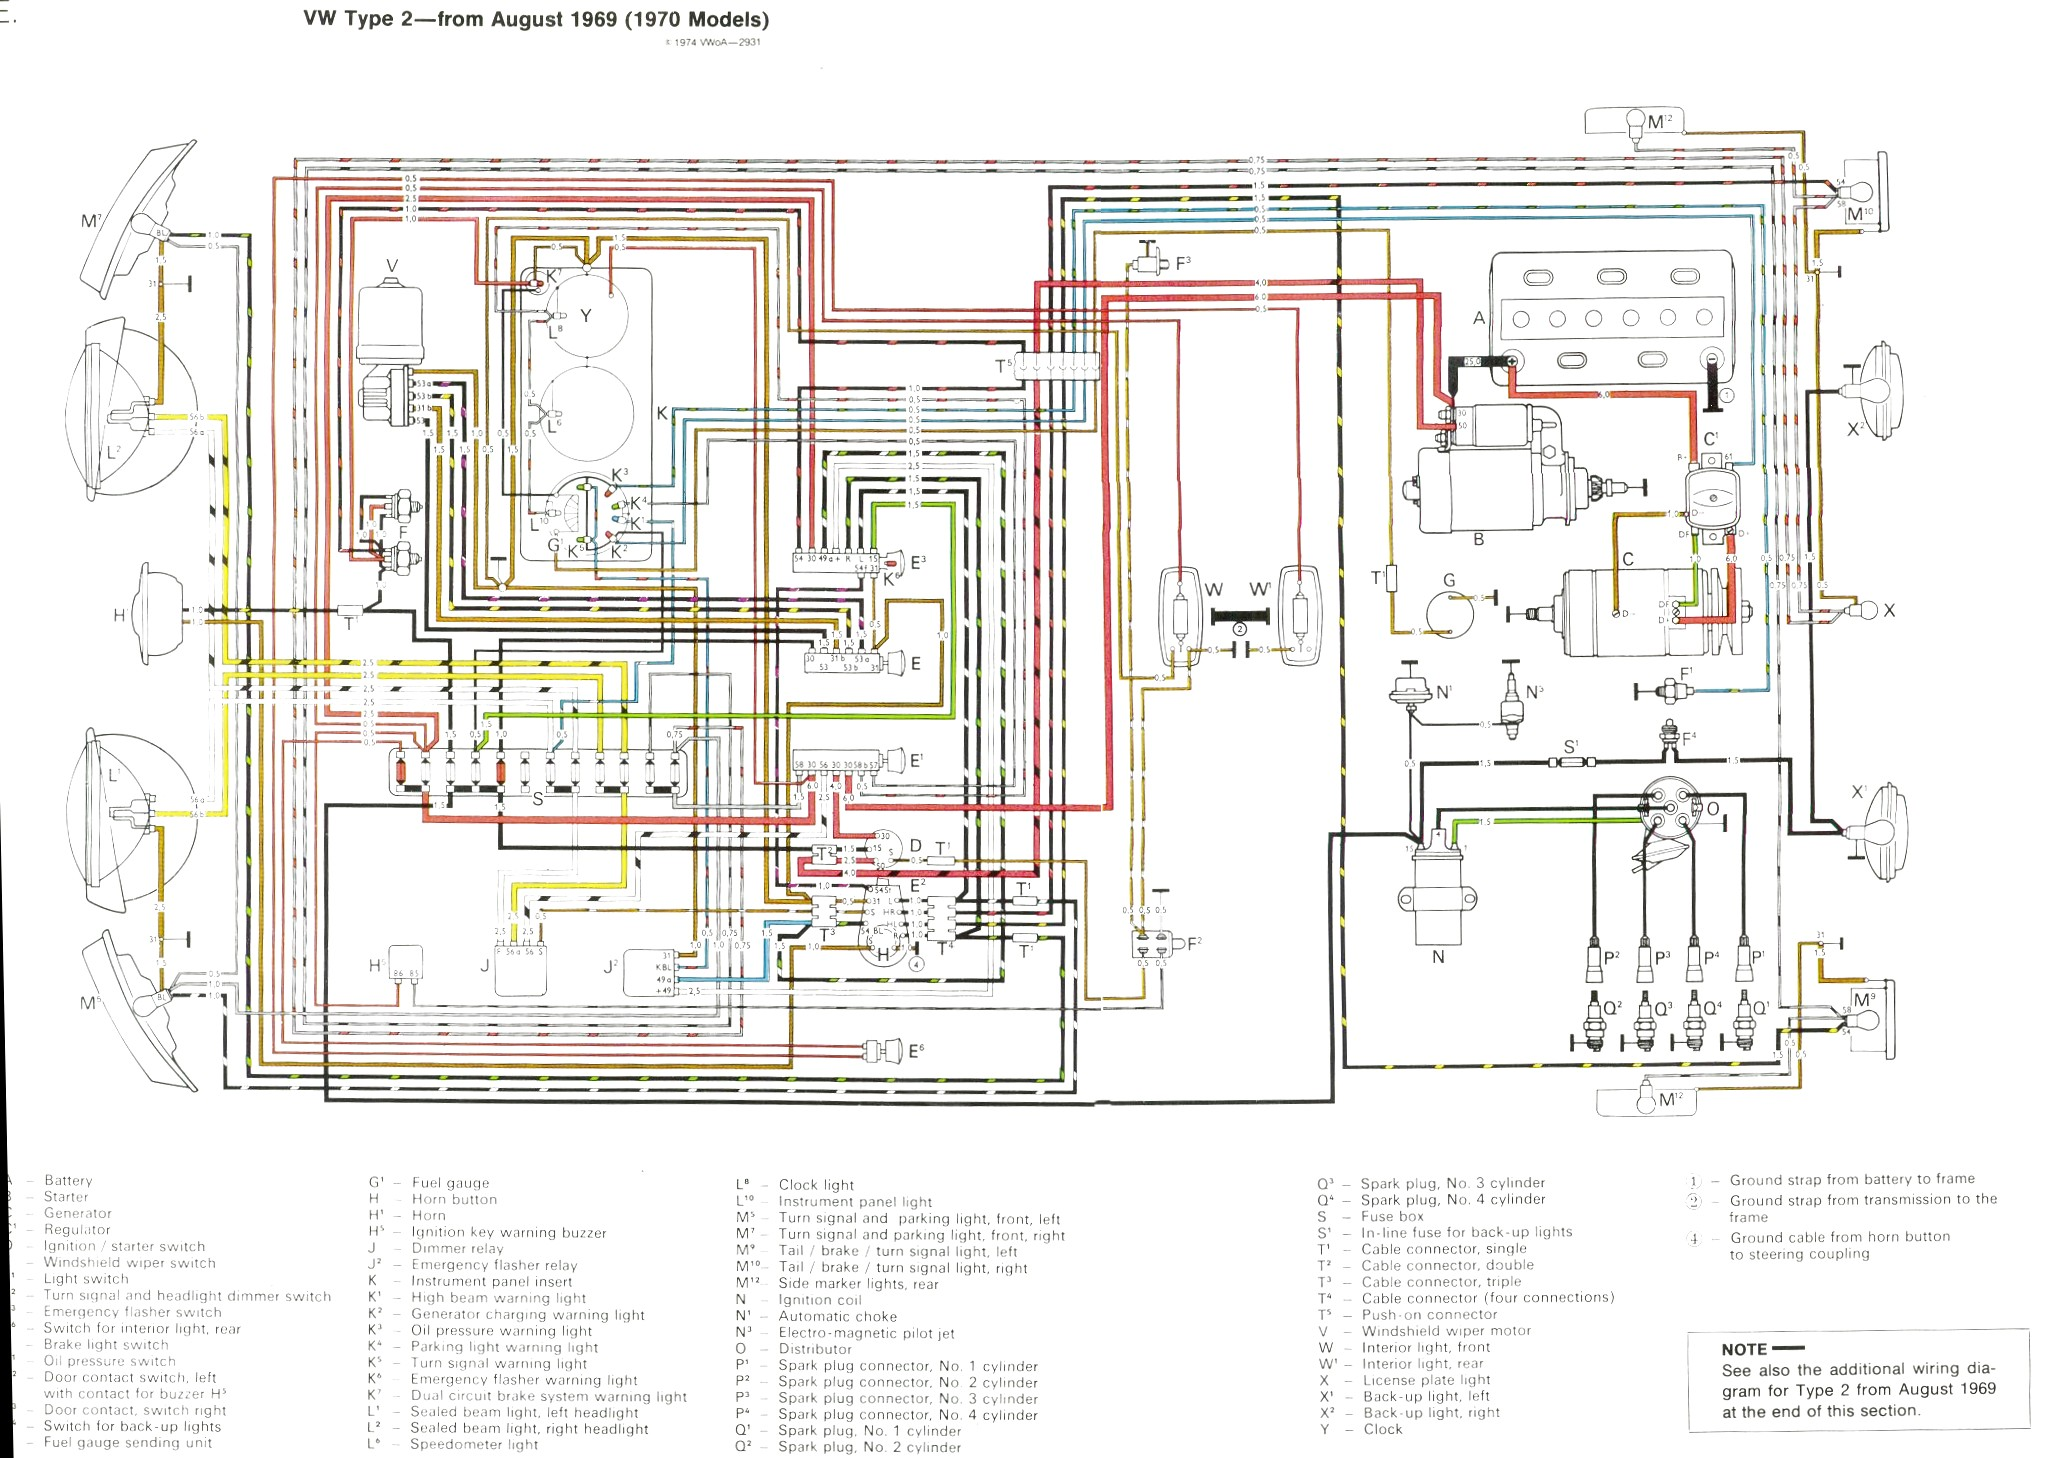 bus 69 70 vintagebus com vw bus (and other) wiring diagrams 1968 vw bus wiring diagram at bakdesigns.co